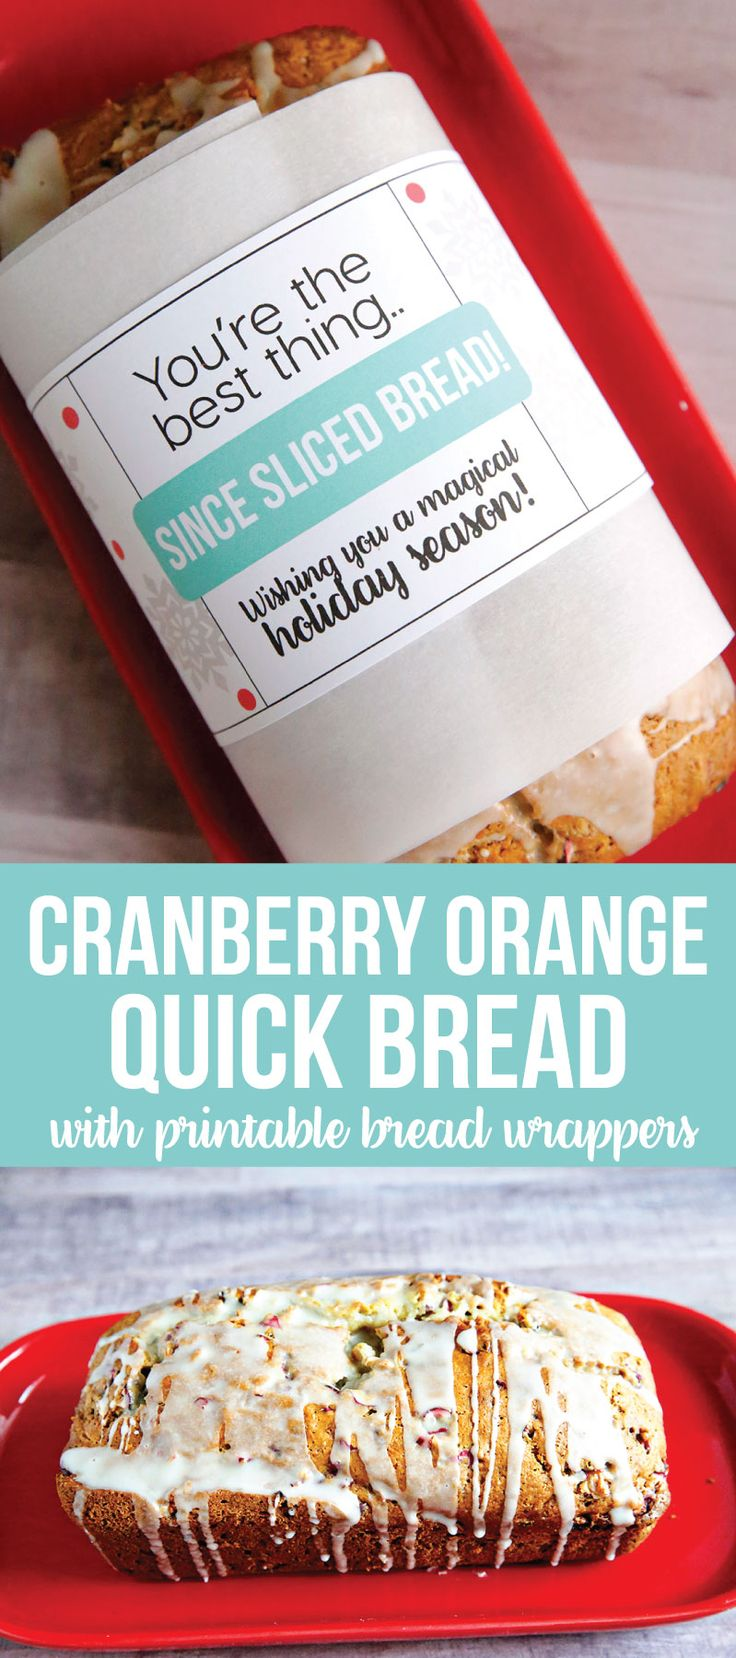 Cranberry Orange Quick Bread- an amazingly delicious bread to make and awesome for the holidays! With cute printables in partnership with Minute Maid for #doingood! AD www.thirtyhandmadedays.com